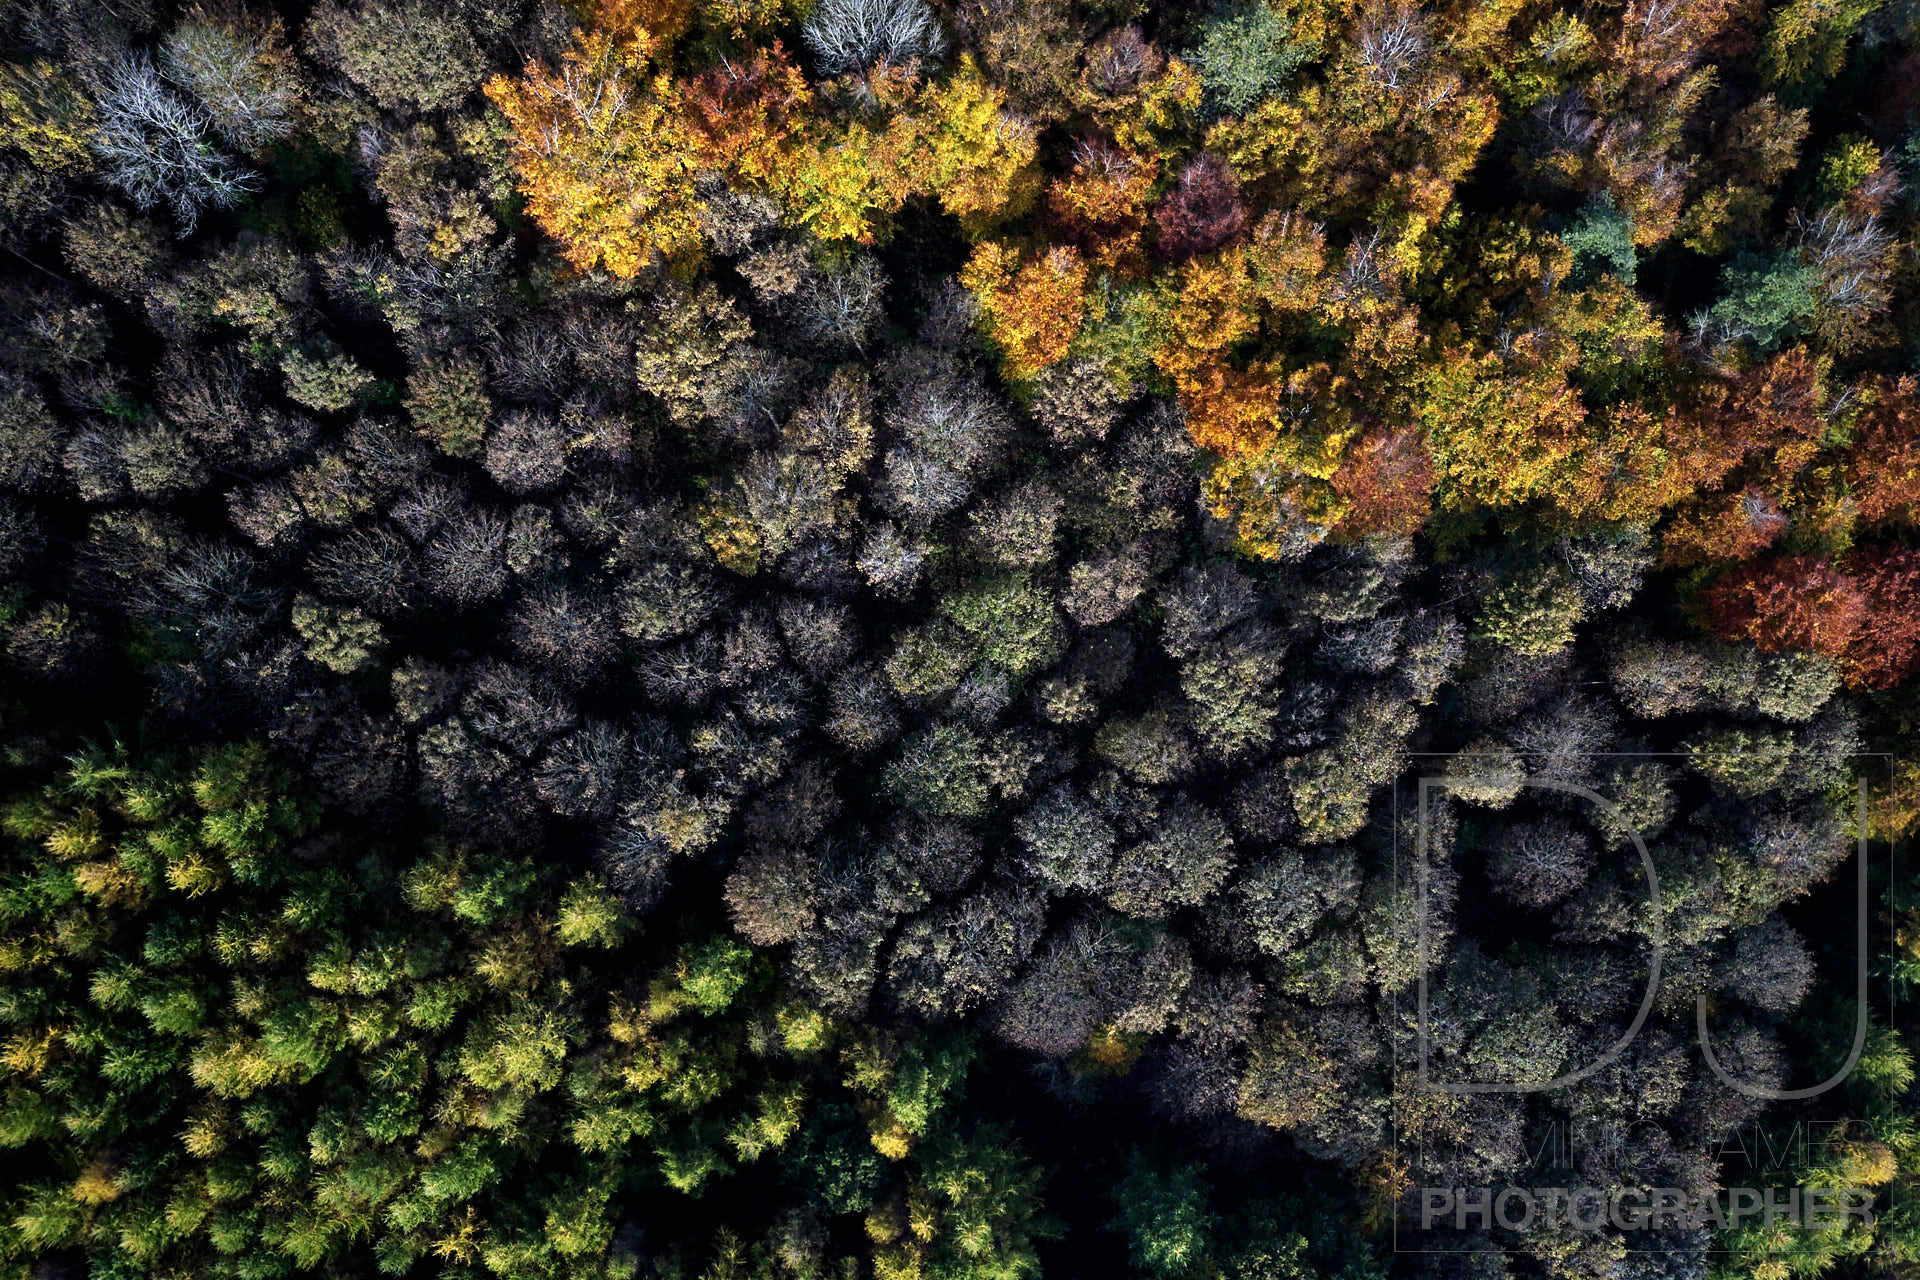 Autumn leaves photographed from a drone